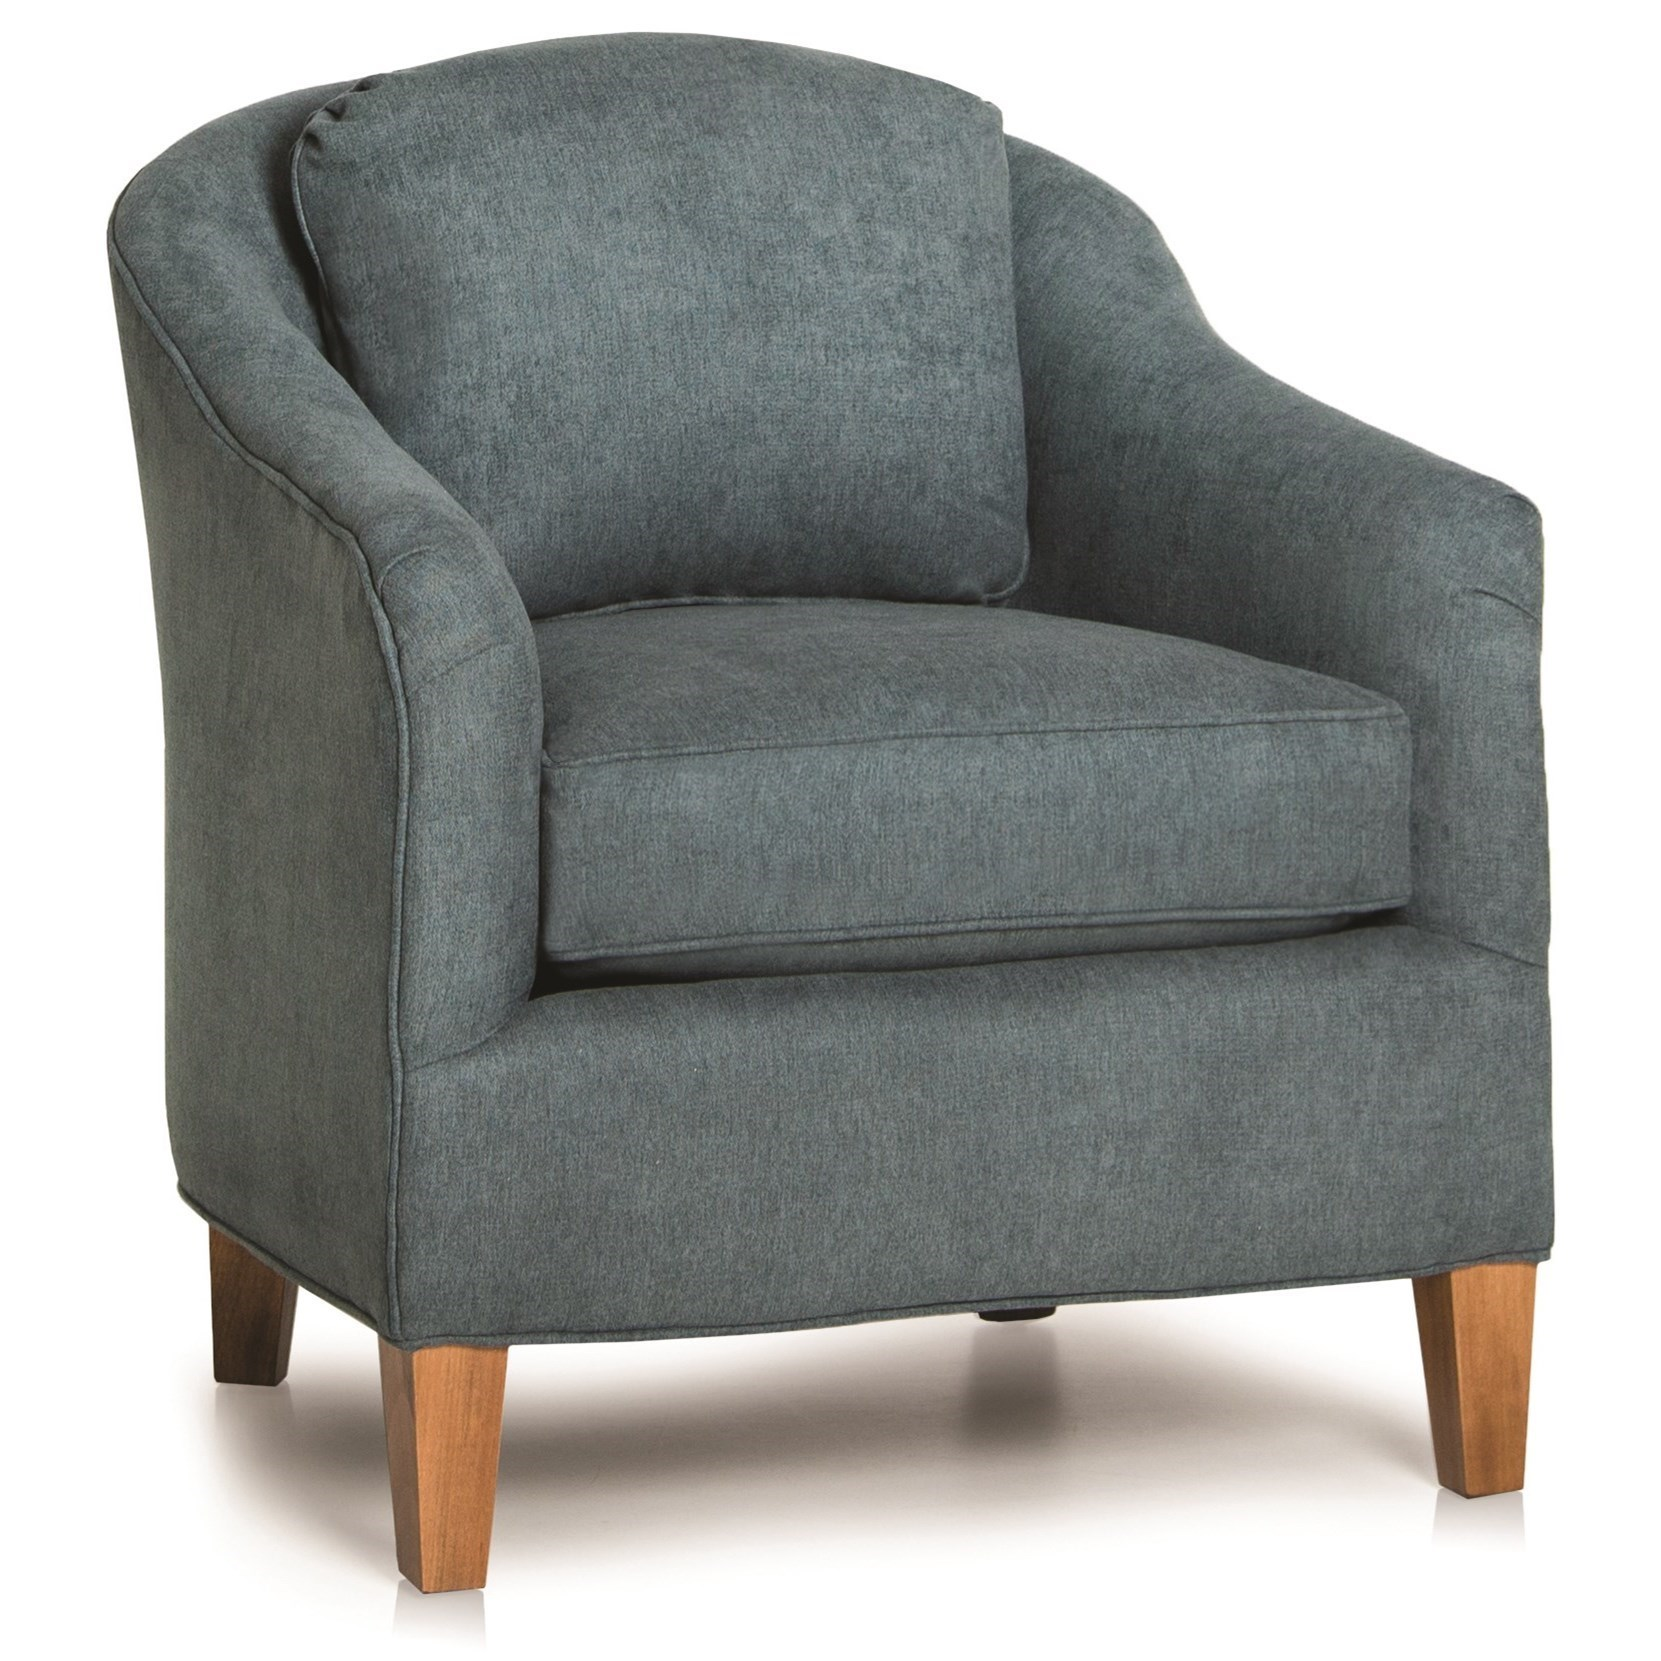 Smith Brothers 942Contemporary Barrel Chair